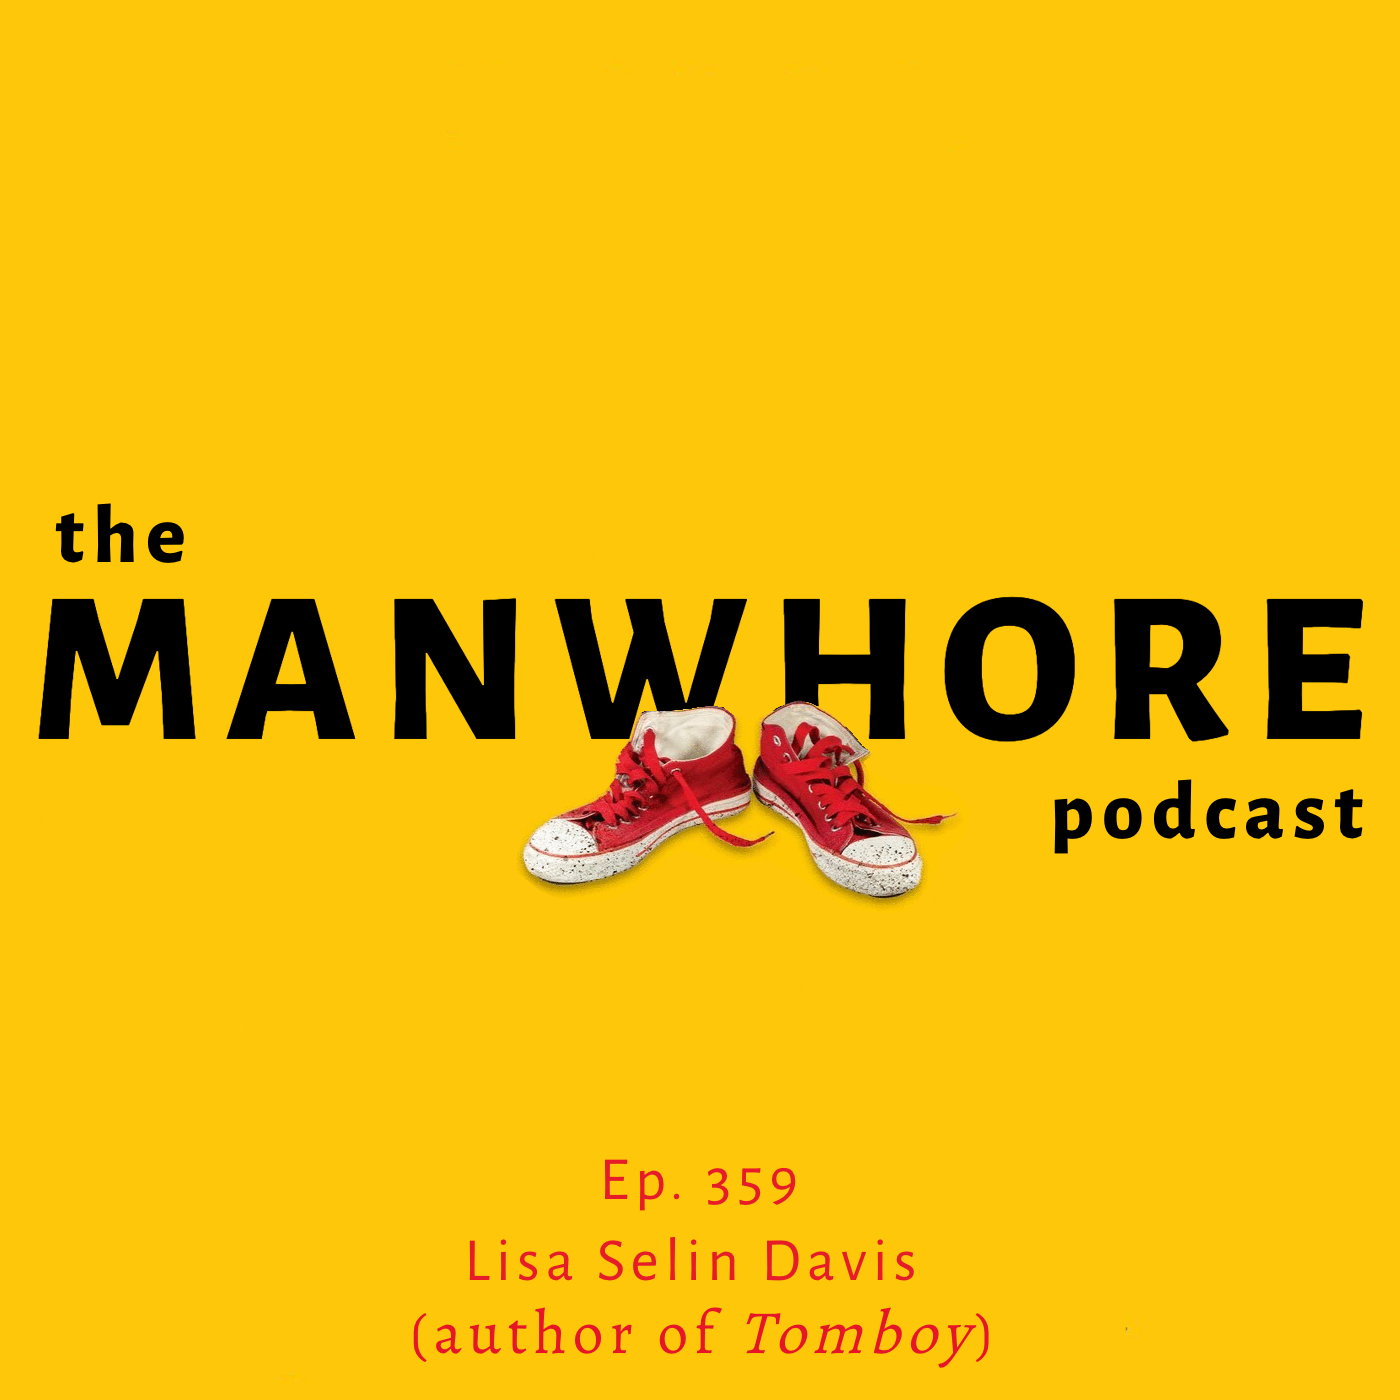 The Manwhore Podcast: A Sex-Positive Quest - Ep. 359: Tomboys, Childhood, and Gender Identity with Lisa Selin Davis